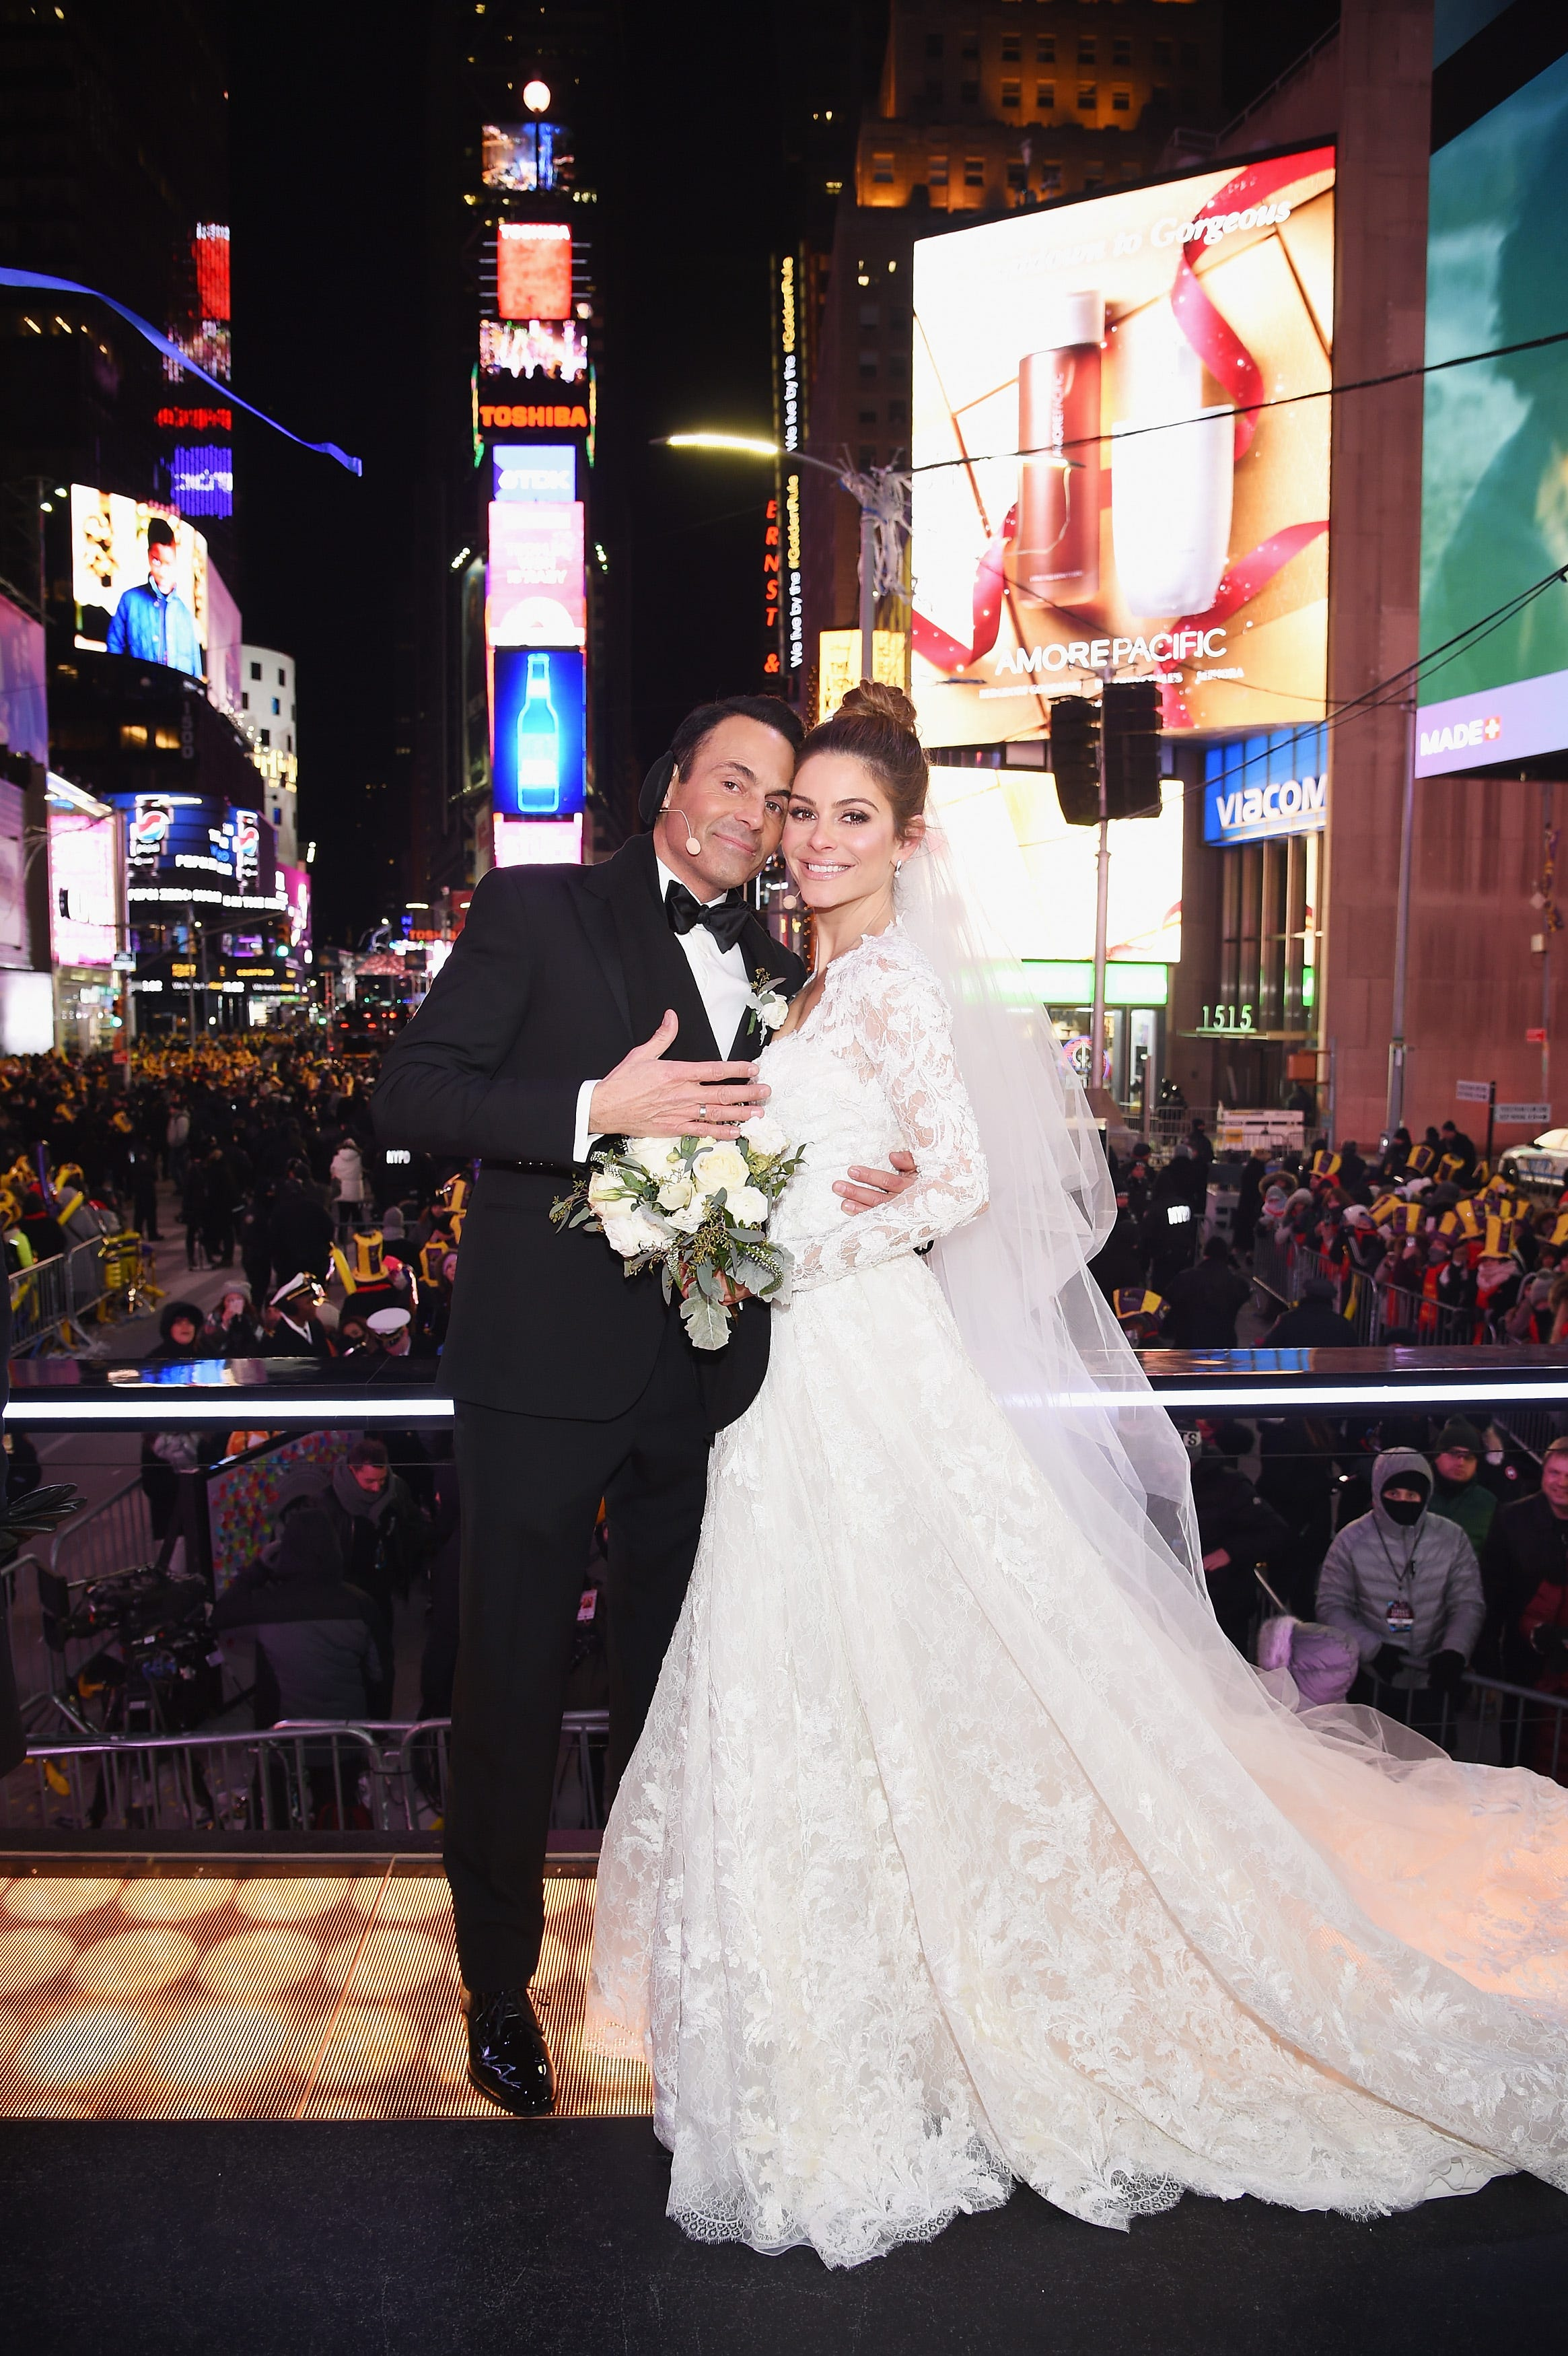 Surprise! Maria Menounos gets married on New Year's Eve live broadcast